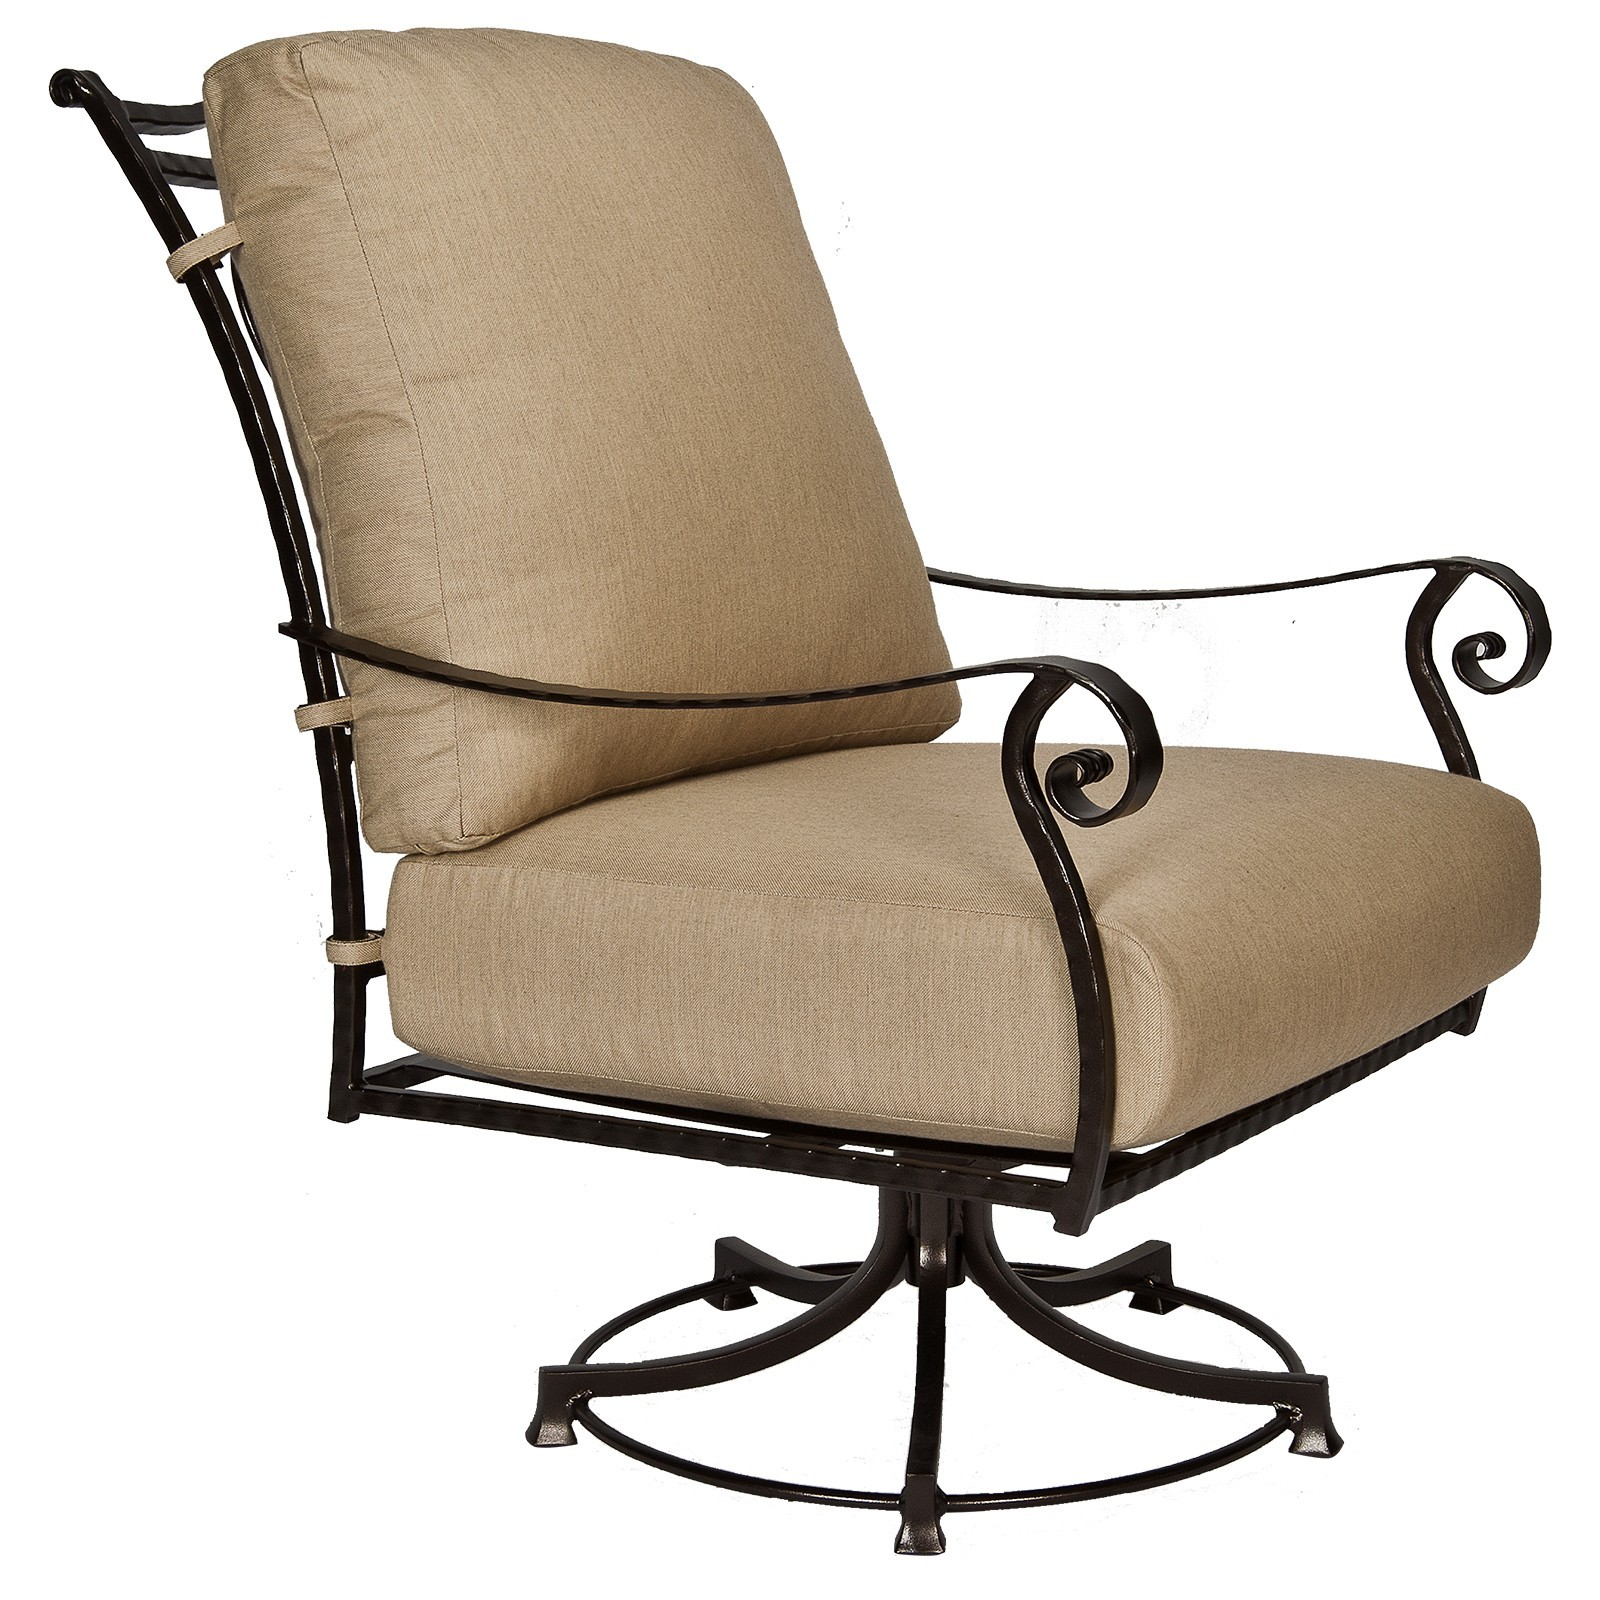 Swivel Rocking Chairs San Cristobal Swivel Rocker Lounge Chair Hauser 39s Patio